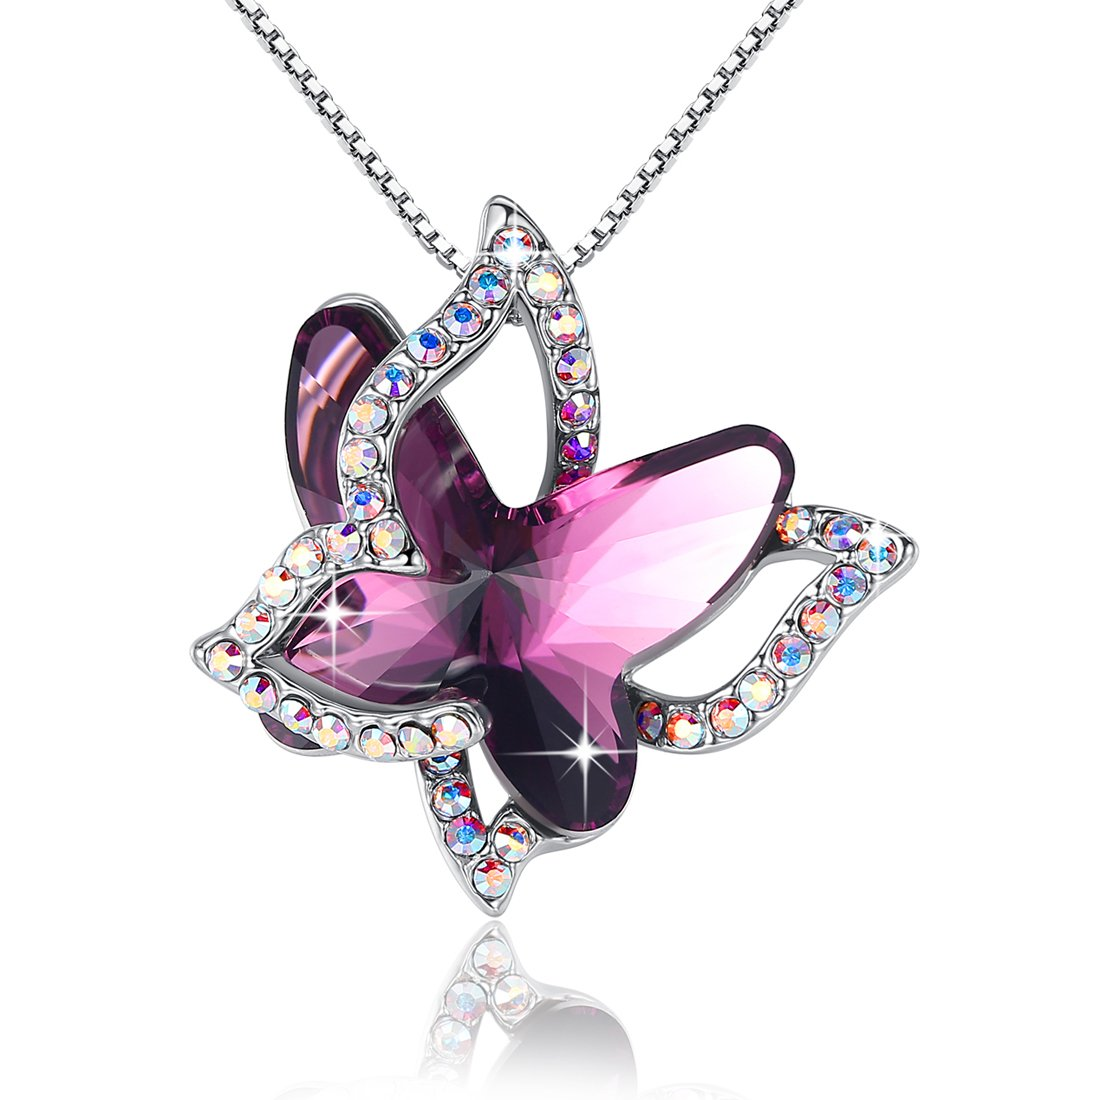 Gemmance Gifts for Women Butterfly Necklace Amethyst Pink Pendant Jewelry Made with Swarovski Crystals